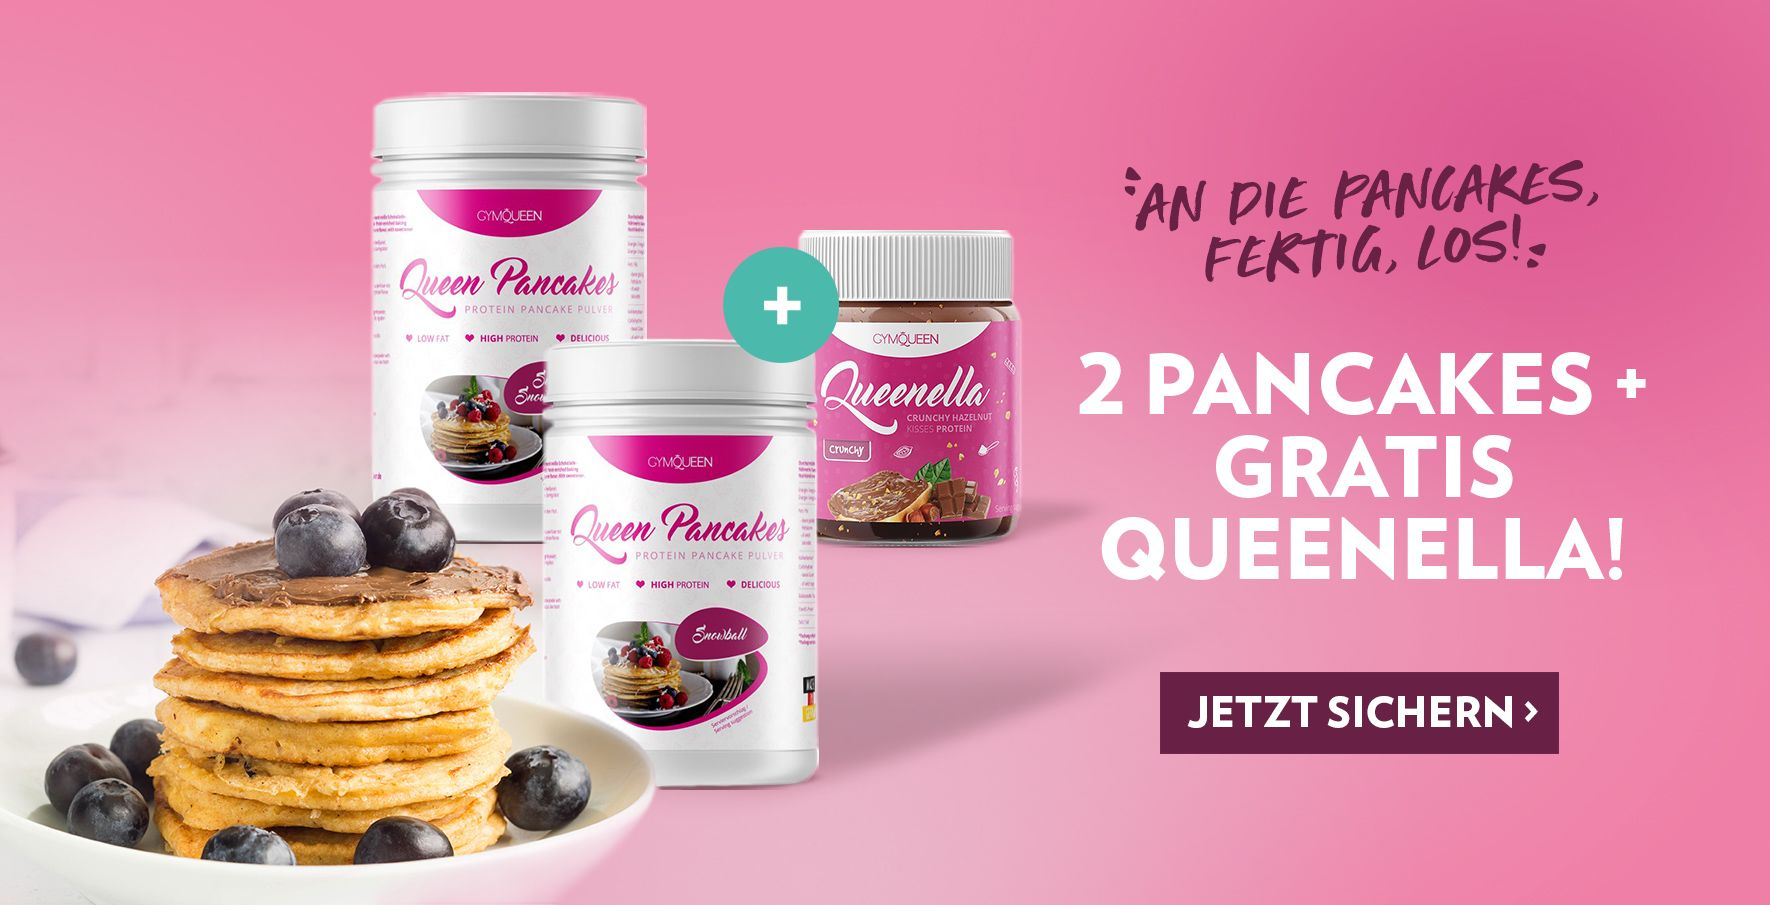 Sichere dir 2 Pancakes + eine Gratis Queenella on top!